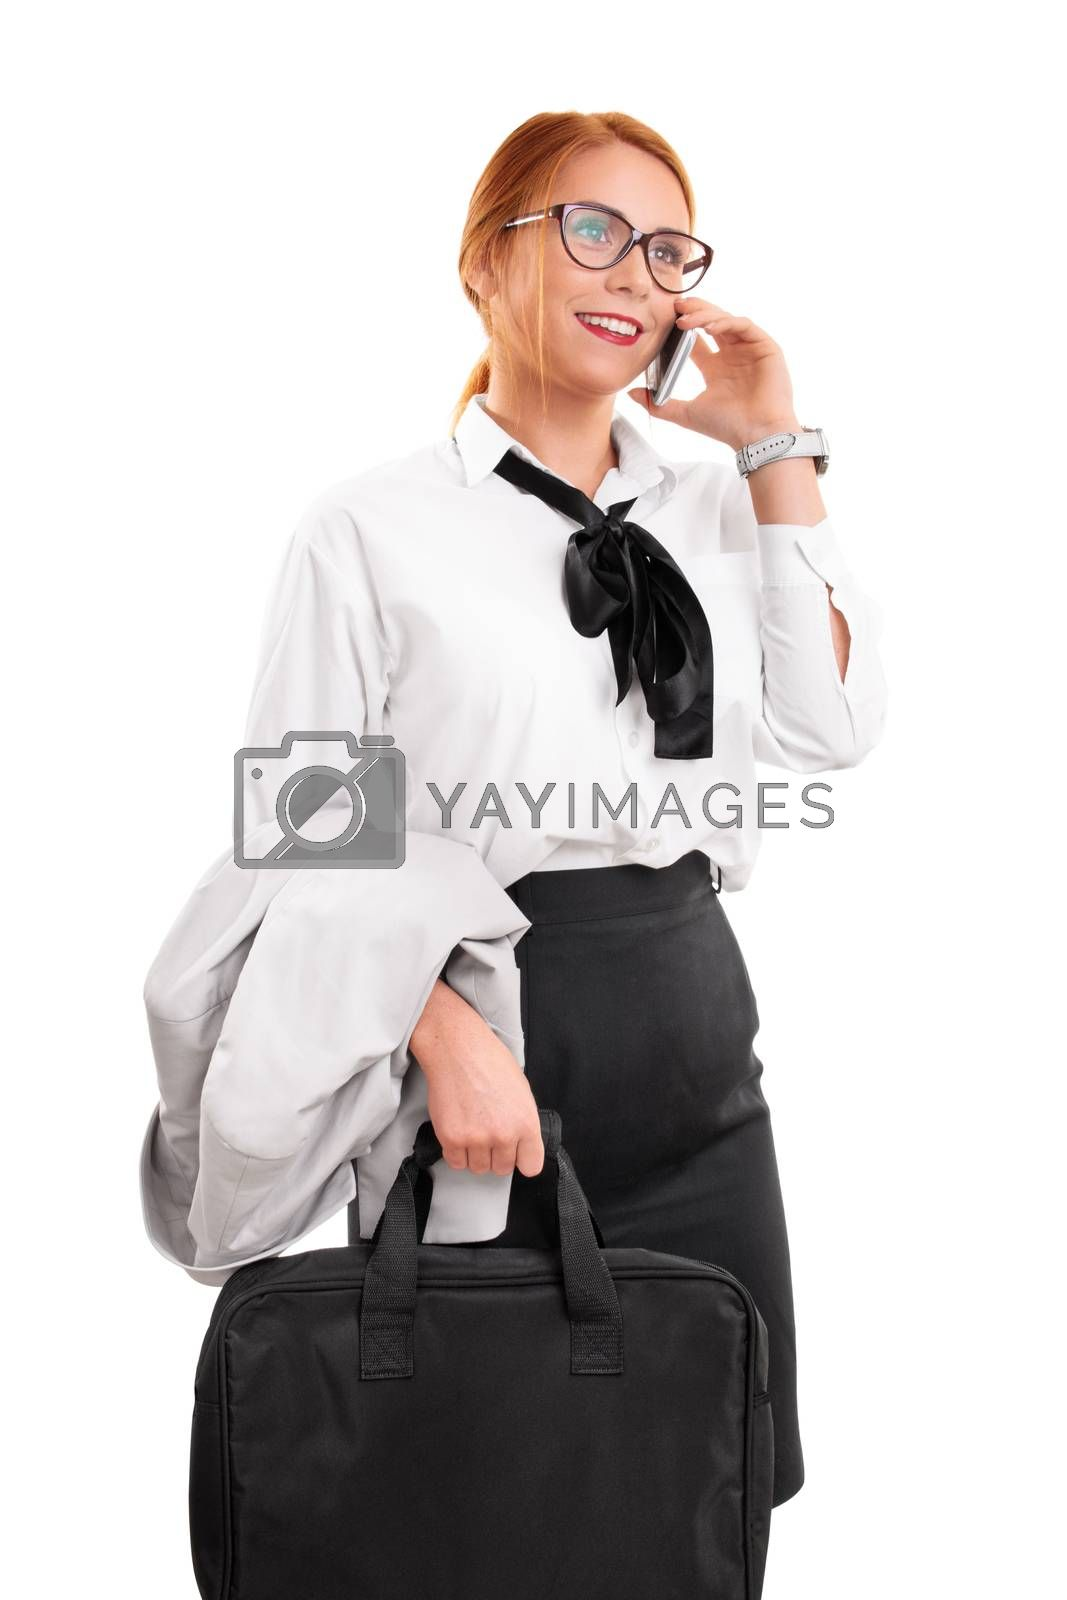 Smiling beautiful young businesswoman with glasses in a suit talking on the phone, holding a laptop bag, isolated on a white background. Business communication concept.